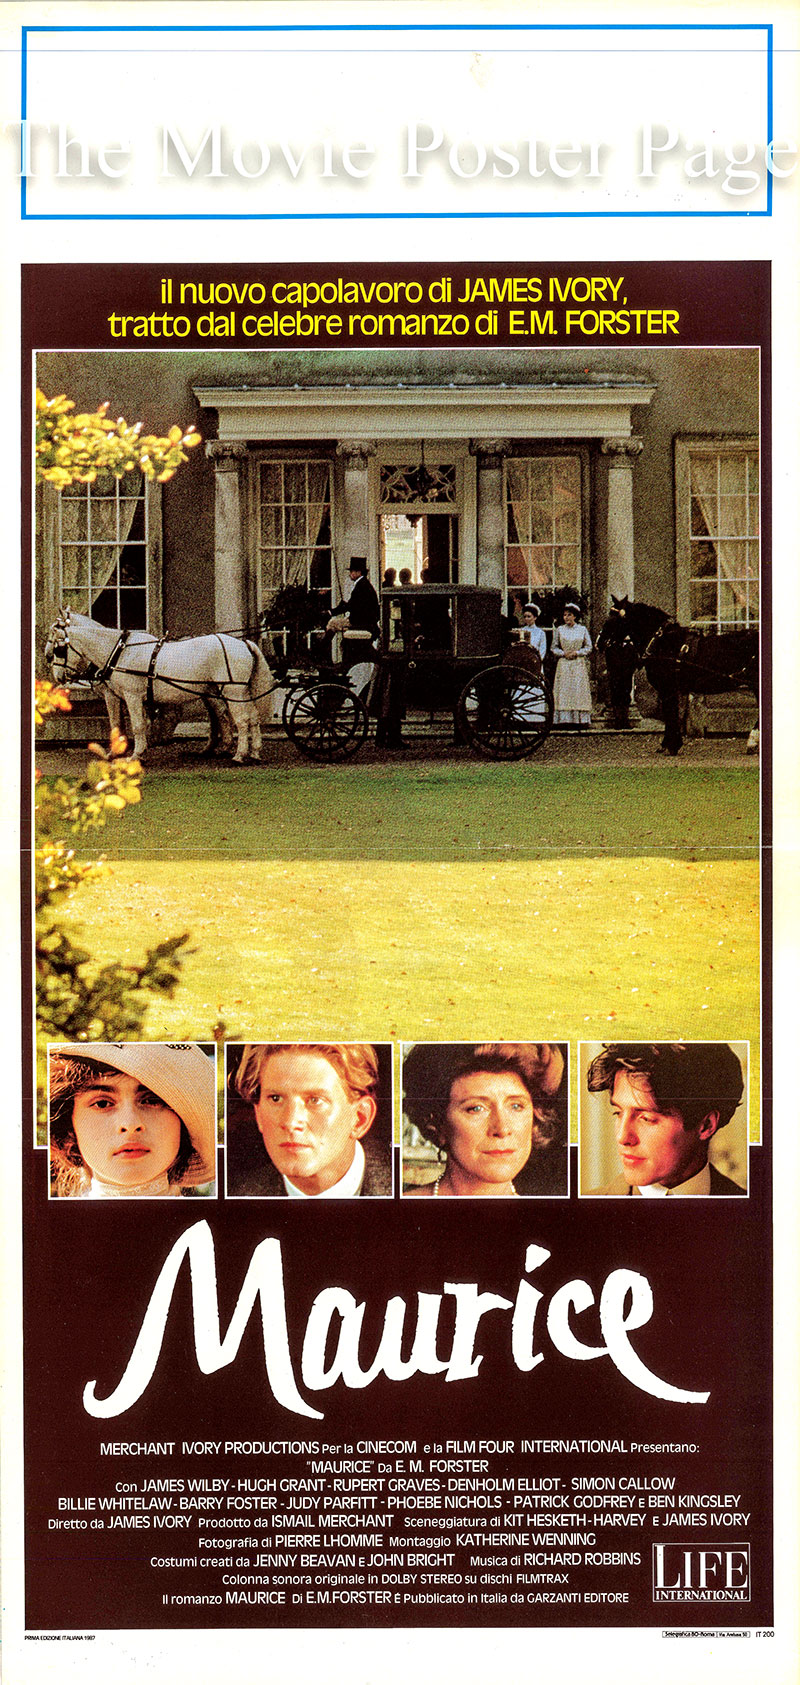 Pictured is a locandina poster fo reh 1987 Merchant Ivory film Maurice starring Hugh Grant as Clive Durham.